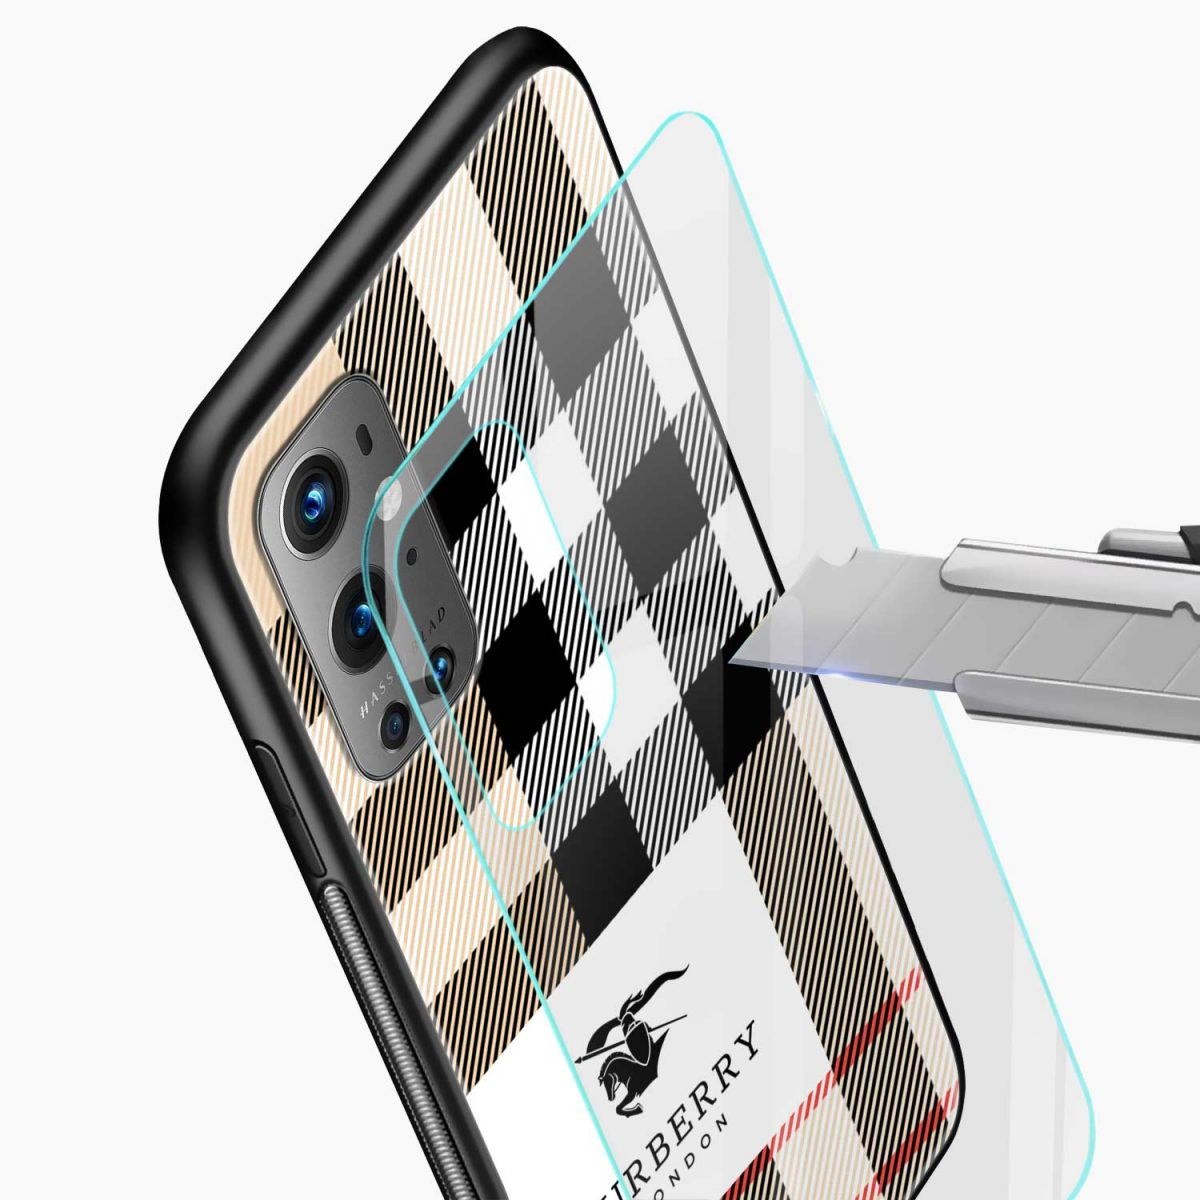 glass view oneplus 9 pro back cover 9